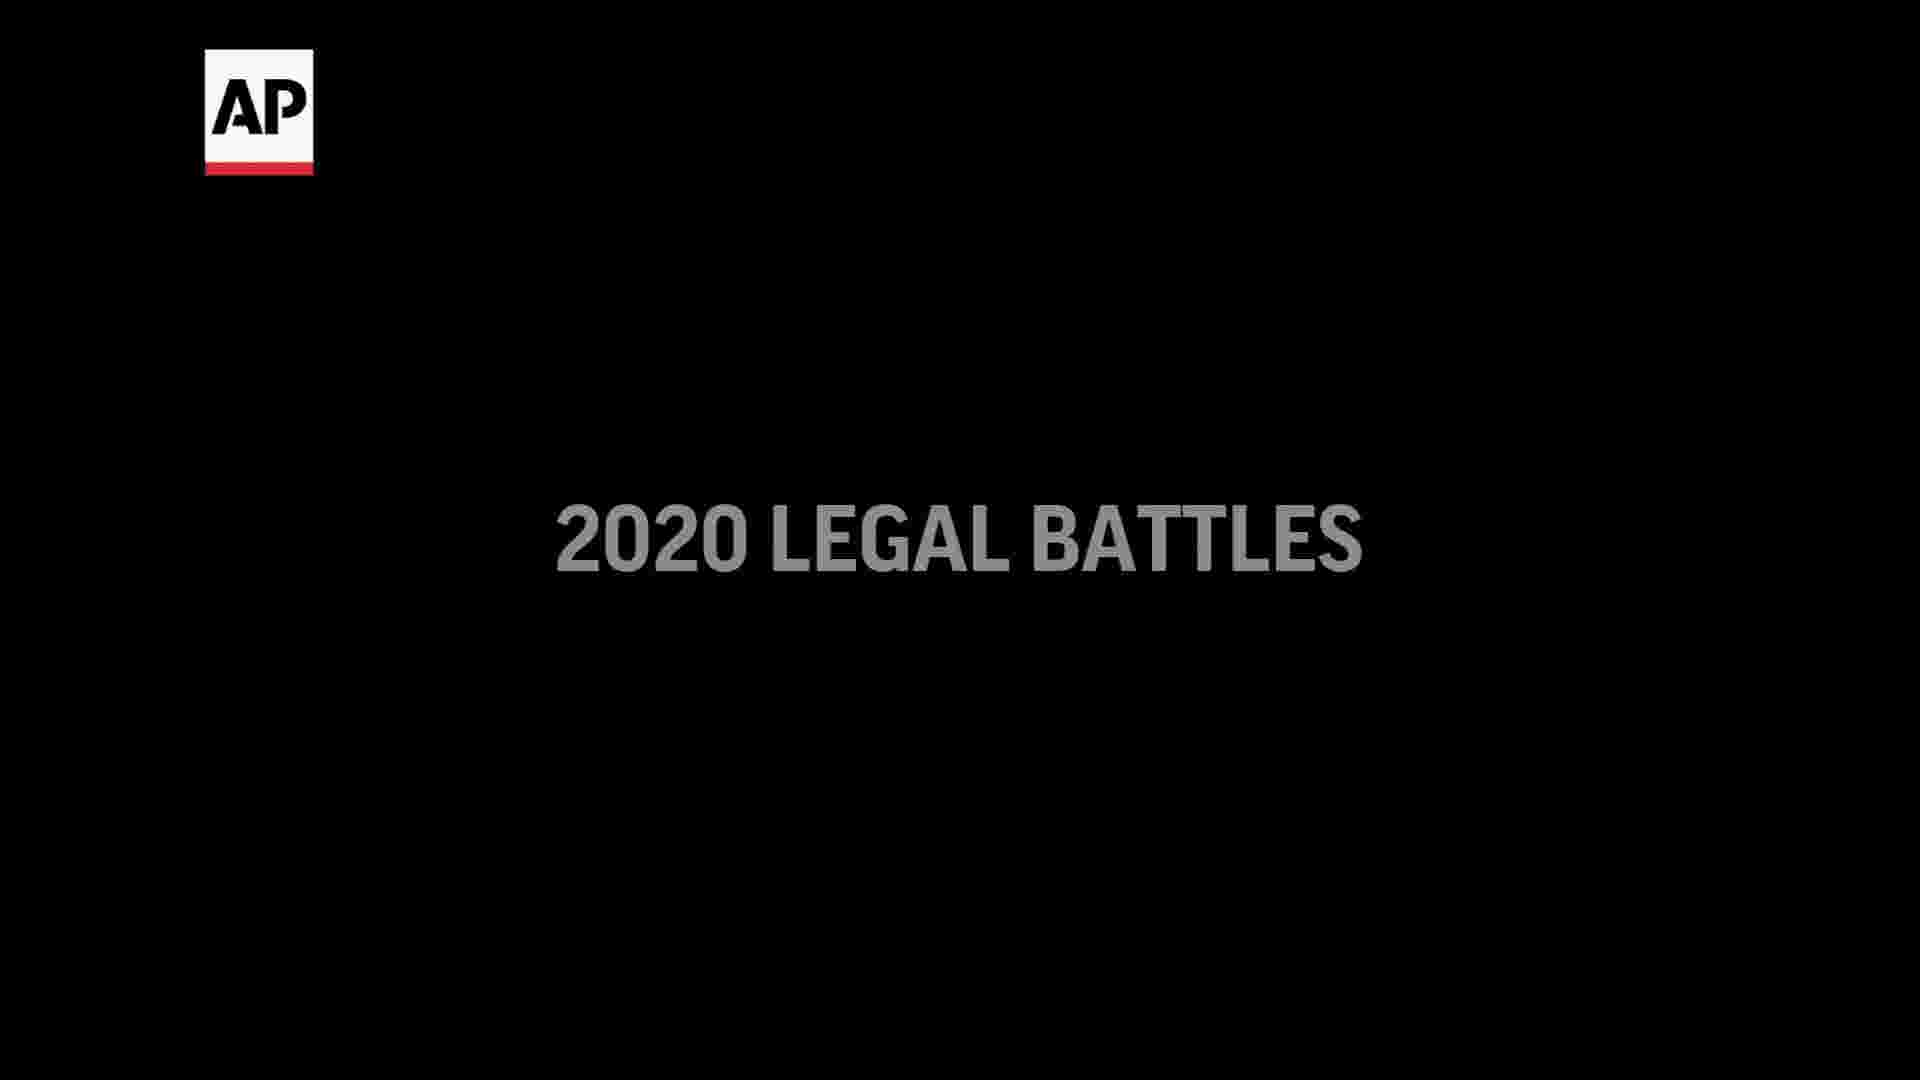 2020 appropriate battles: Depp, Spears, Loughlin